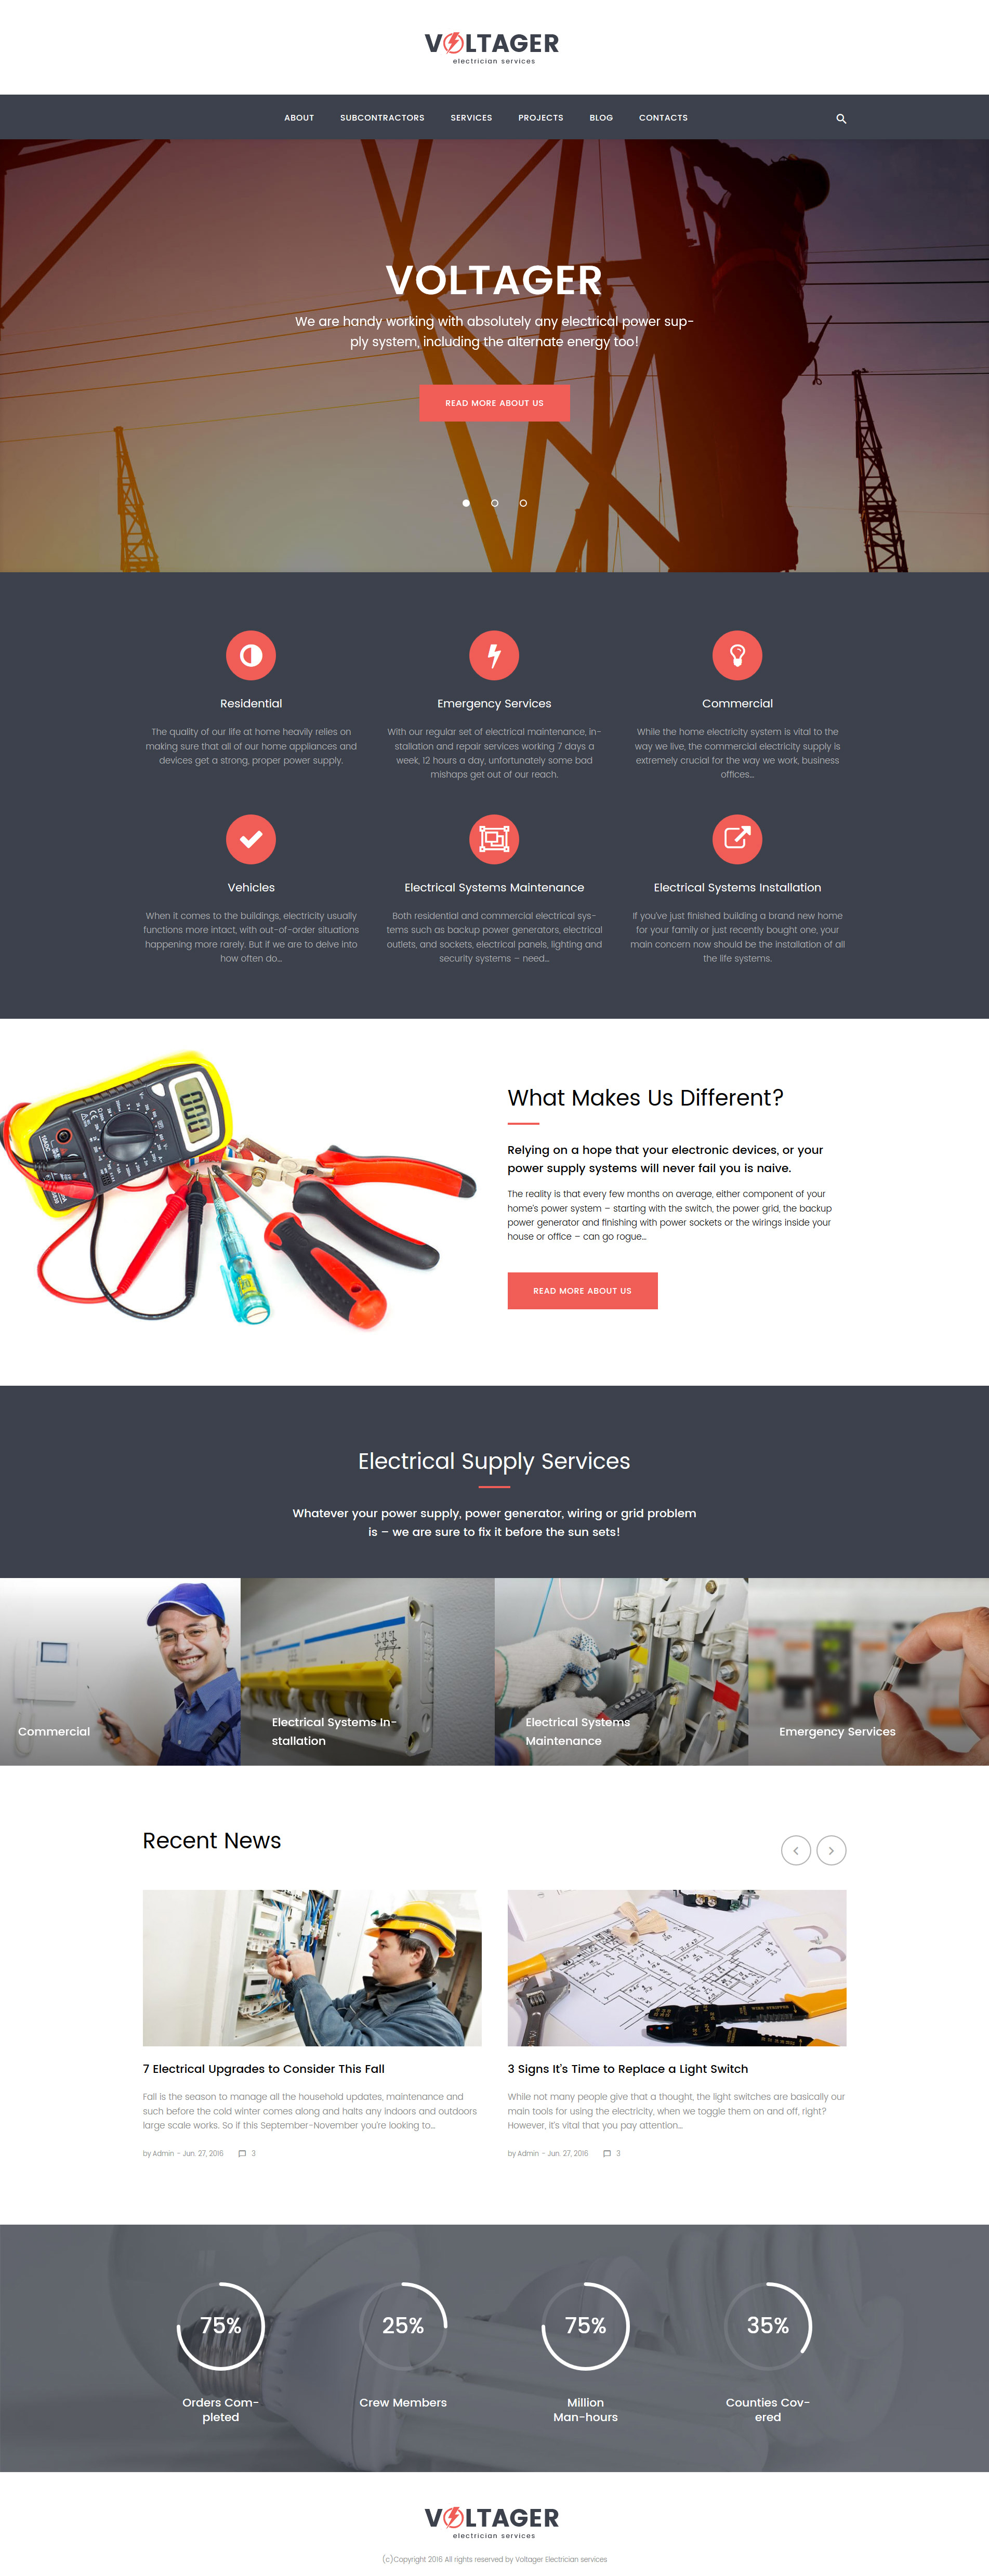 Voltager - Electricity & Electrician Services WordPress Theme - screenshot